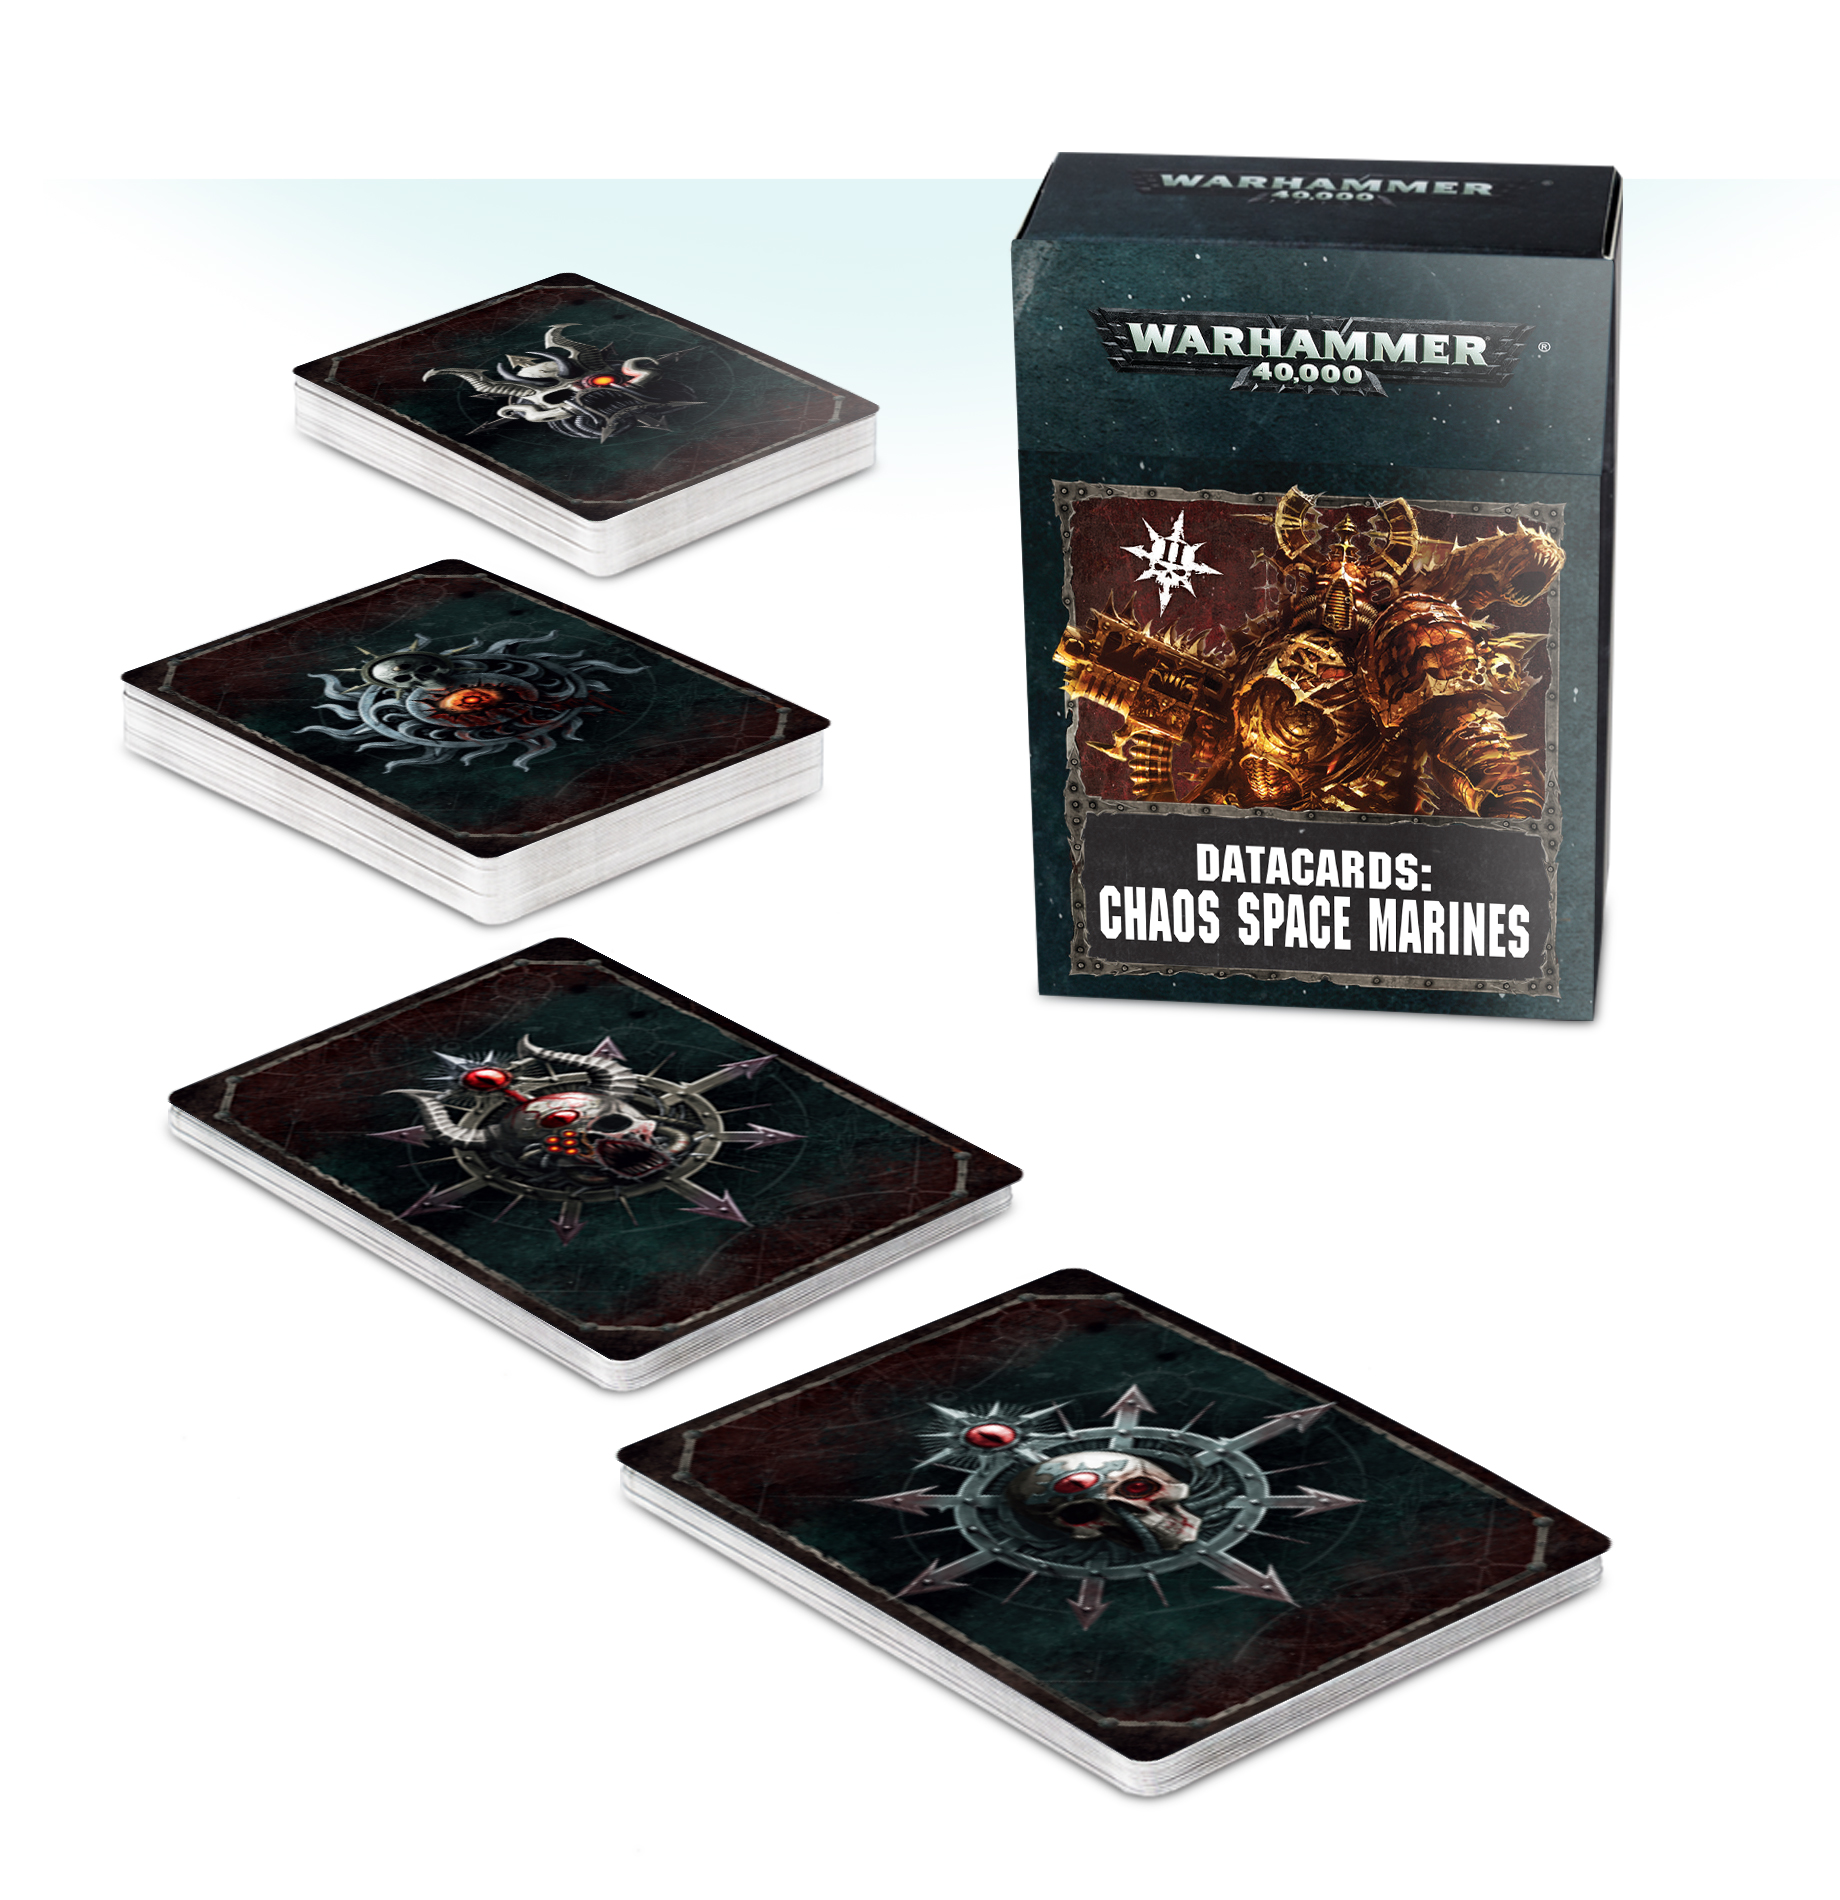 Chaos Space Marines Datacards